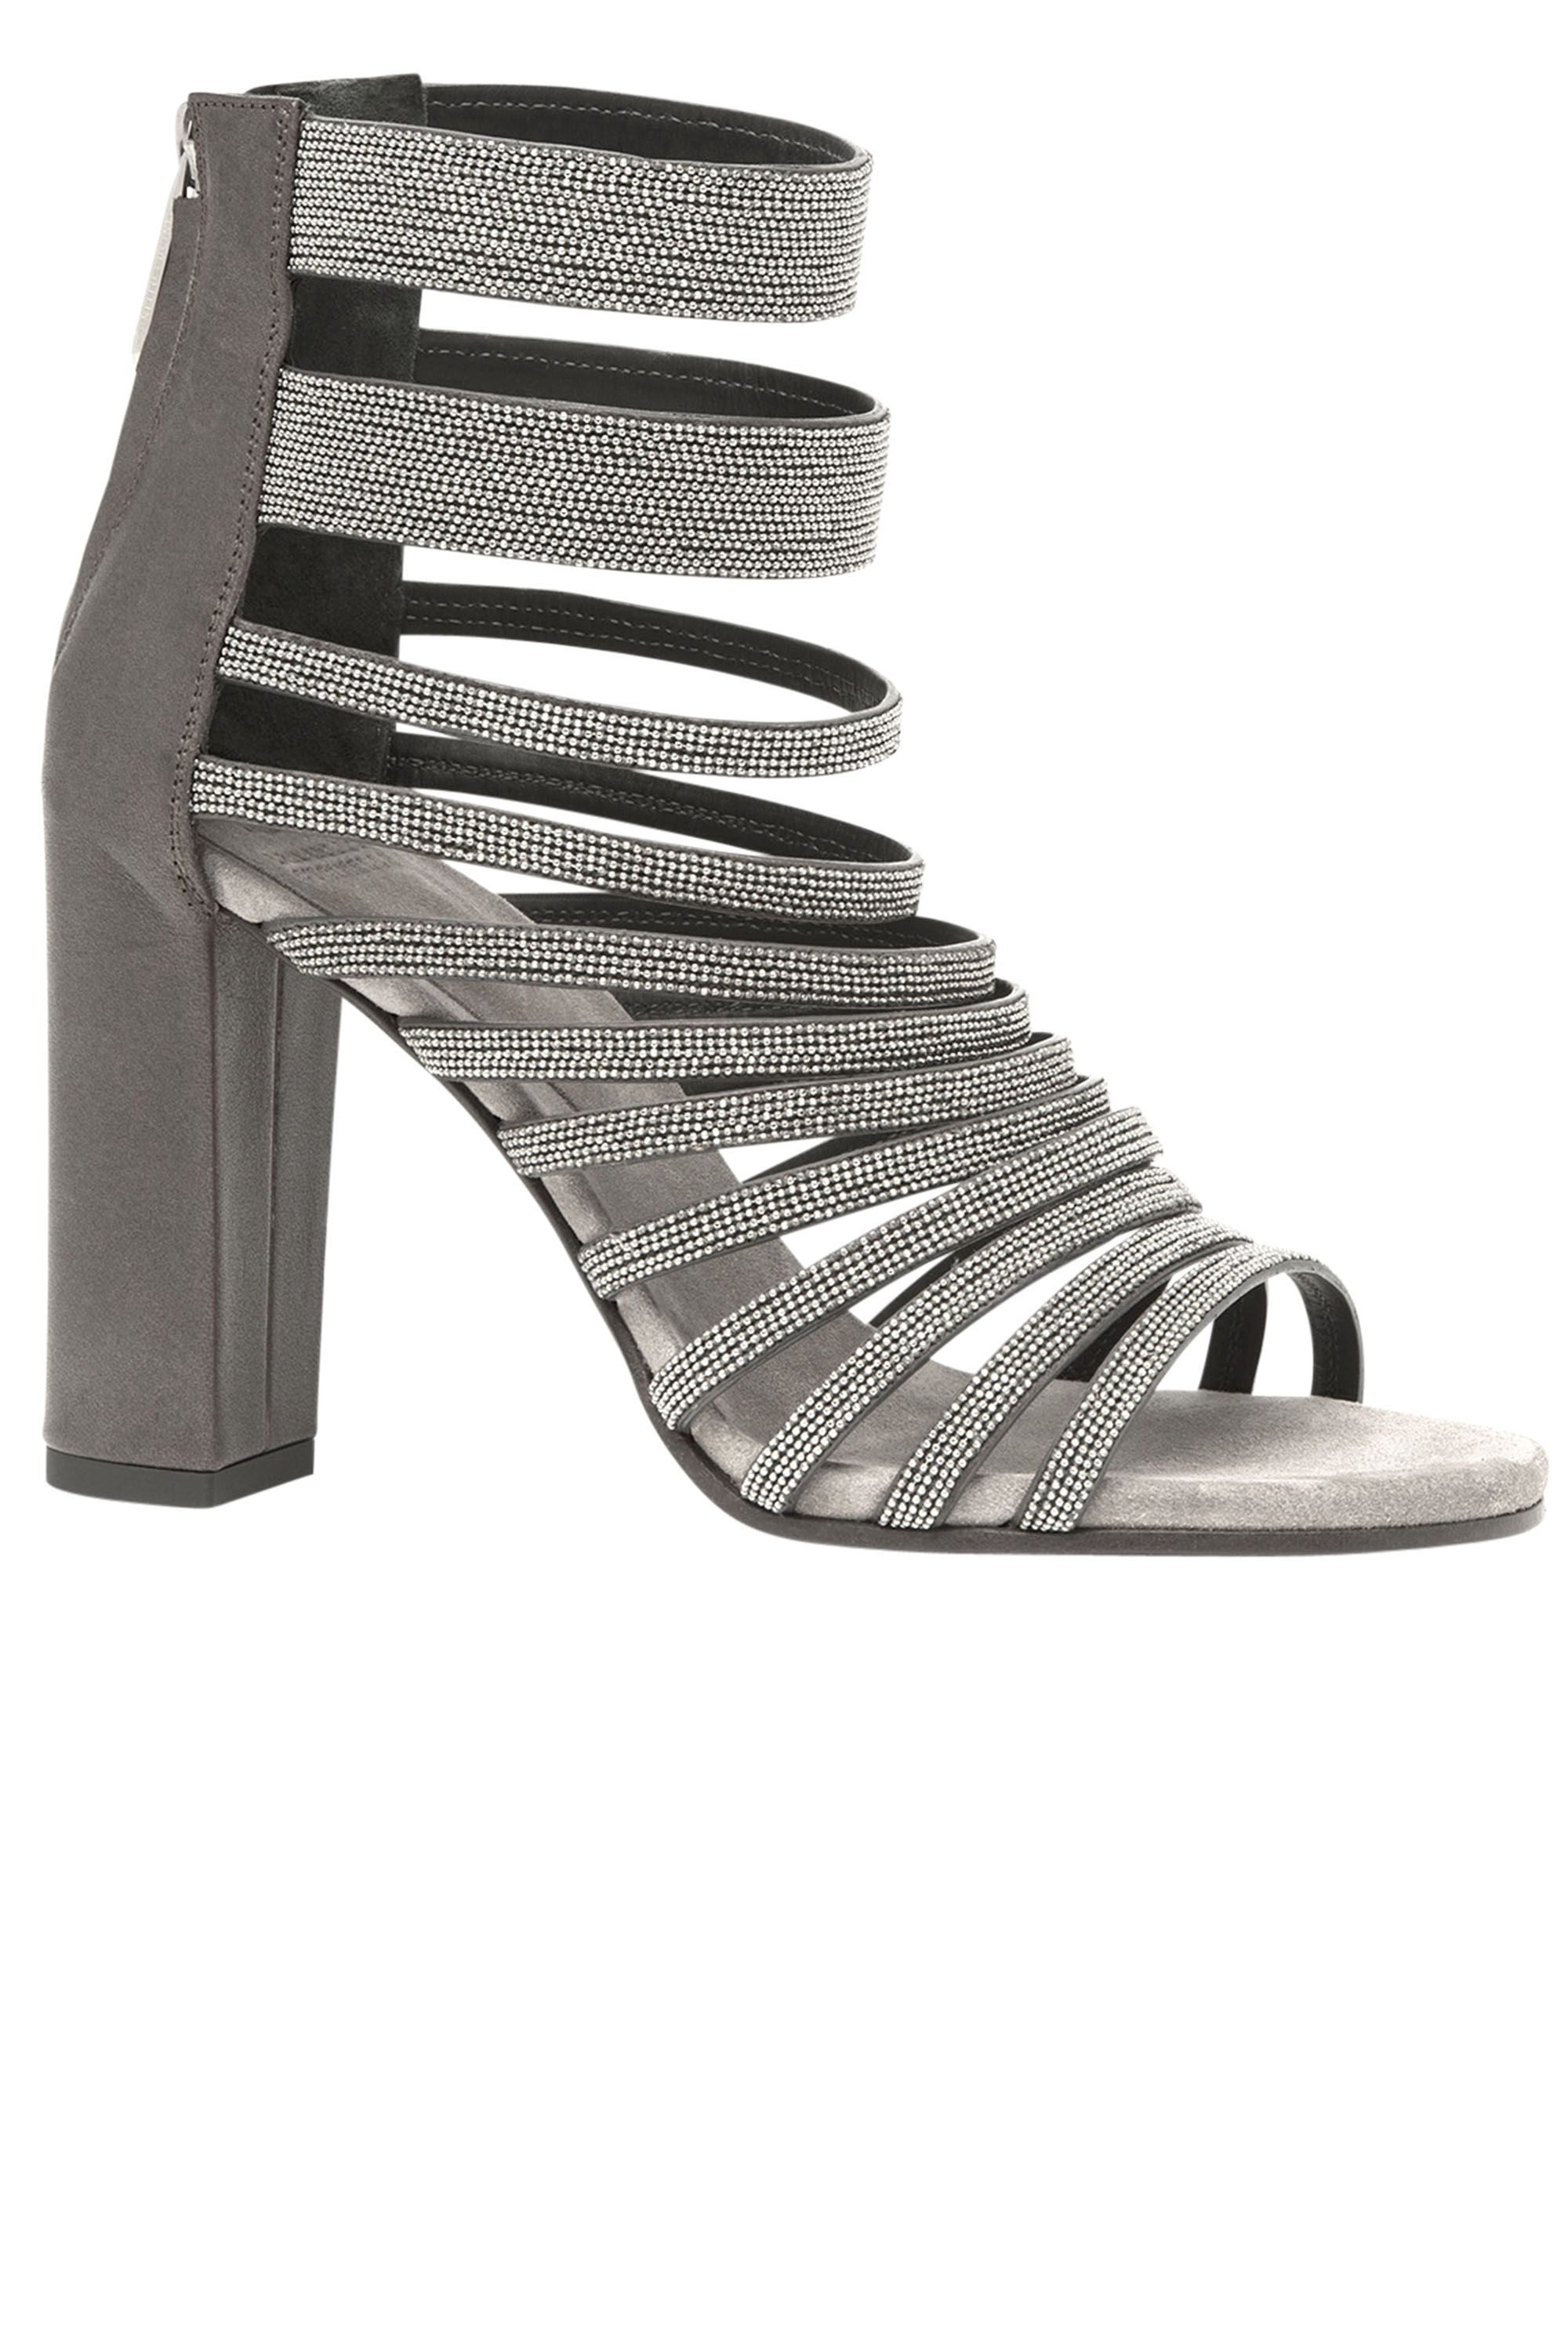 <p><strong>Brunello Cucinelli</strong> shoes, $2,995, 212-627-9202.</p>